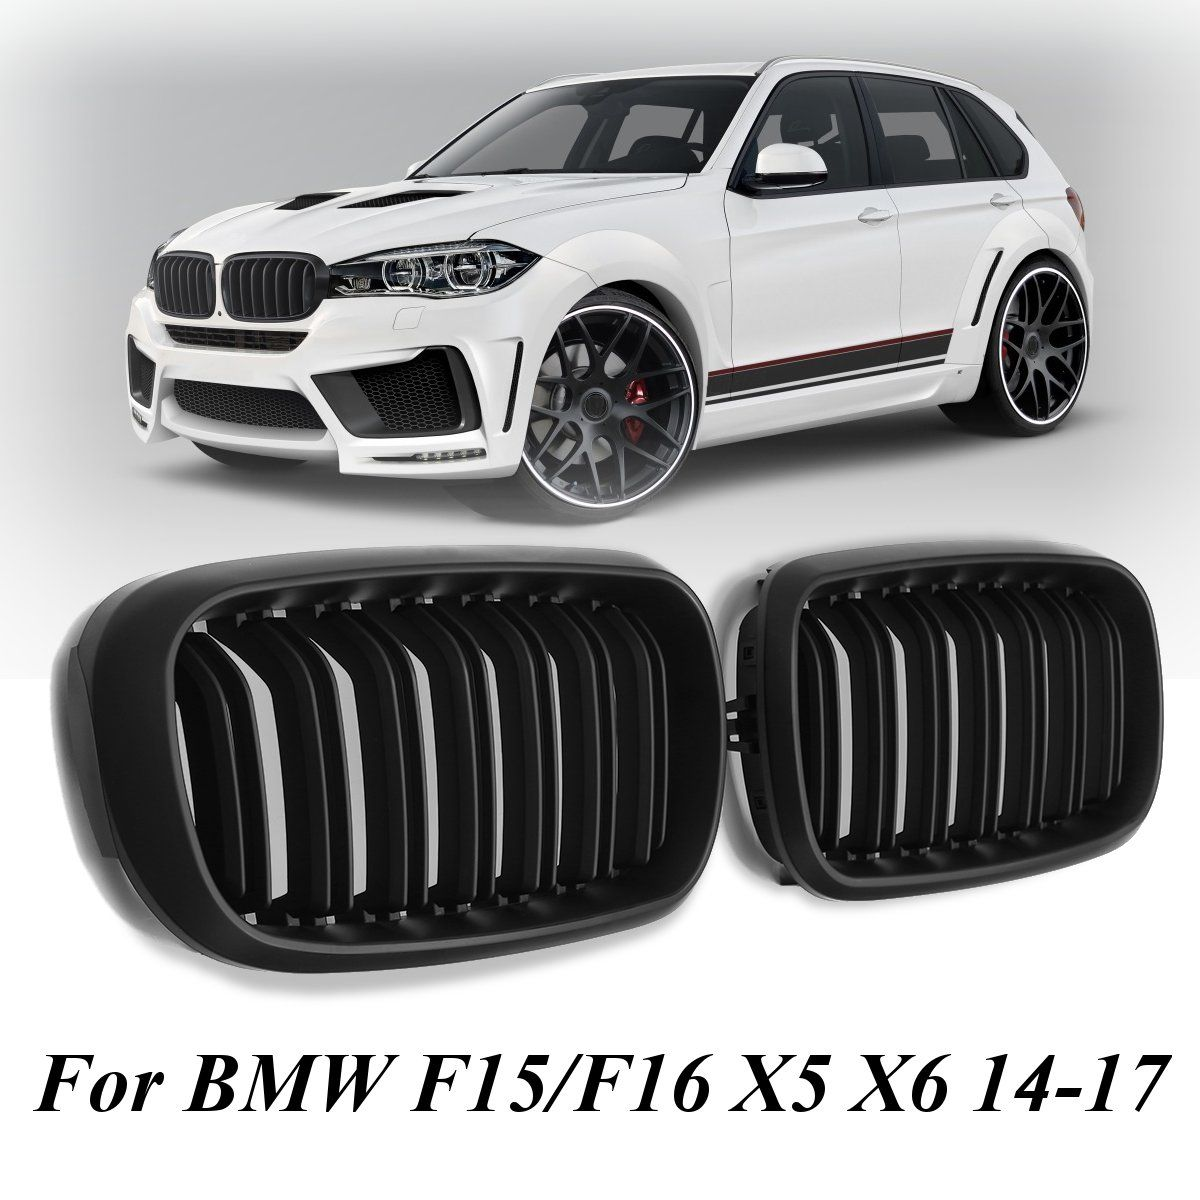 Pair New Matte Black Double Slat Front Grill Grille For BMW F15/F16 X5 X6 2014-2017